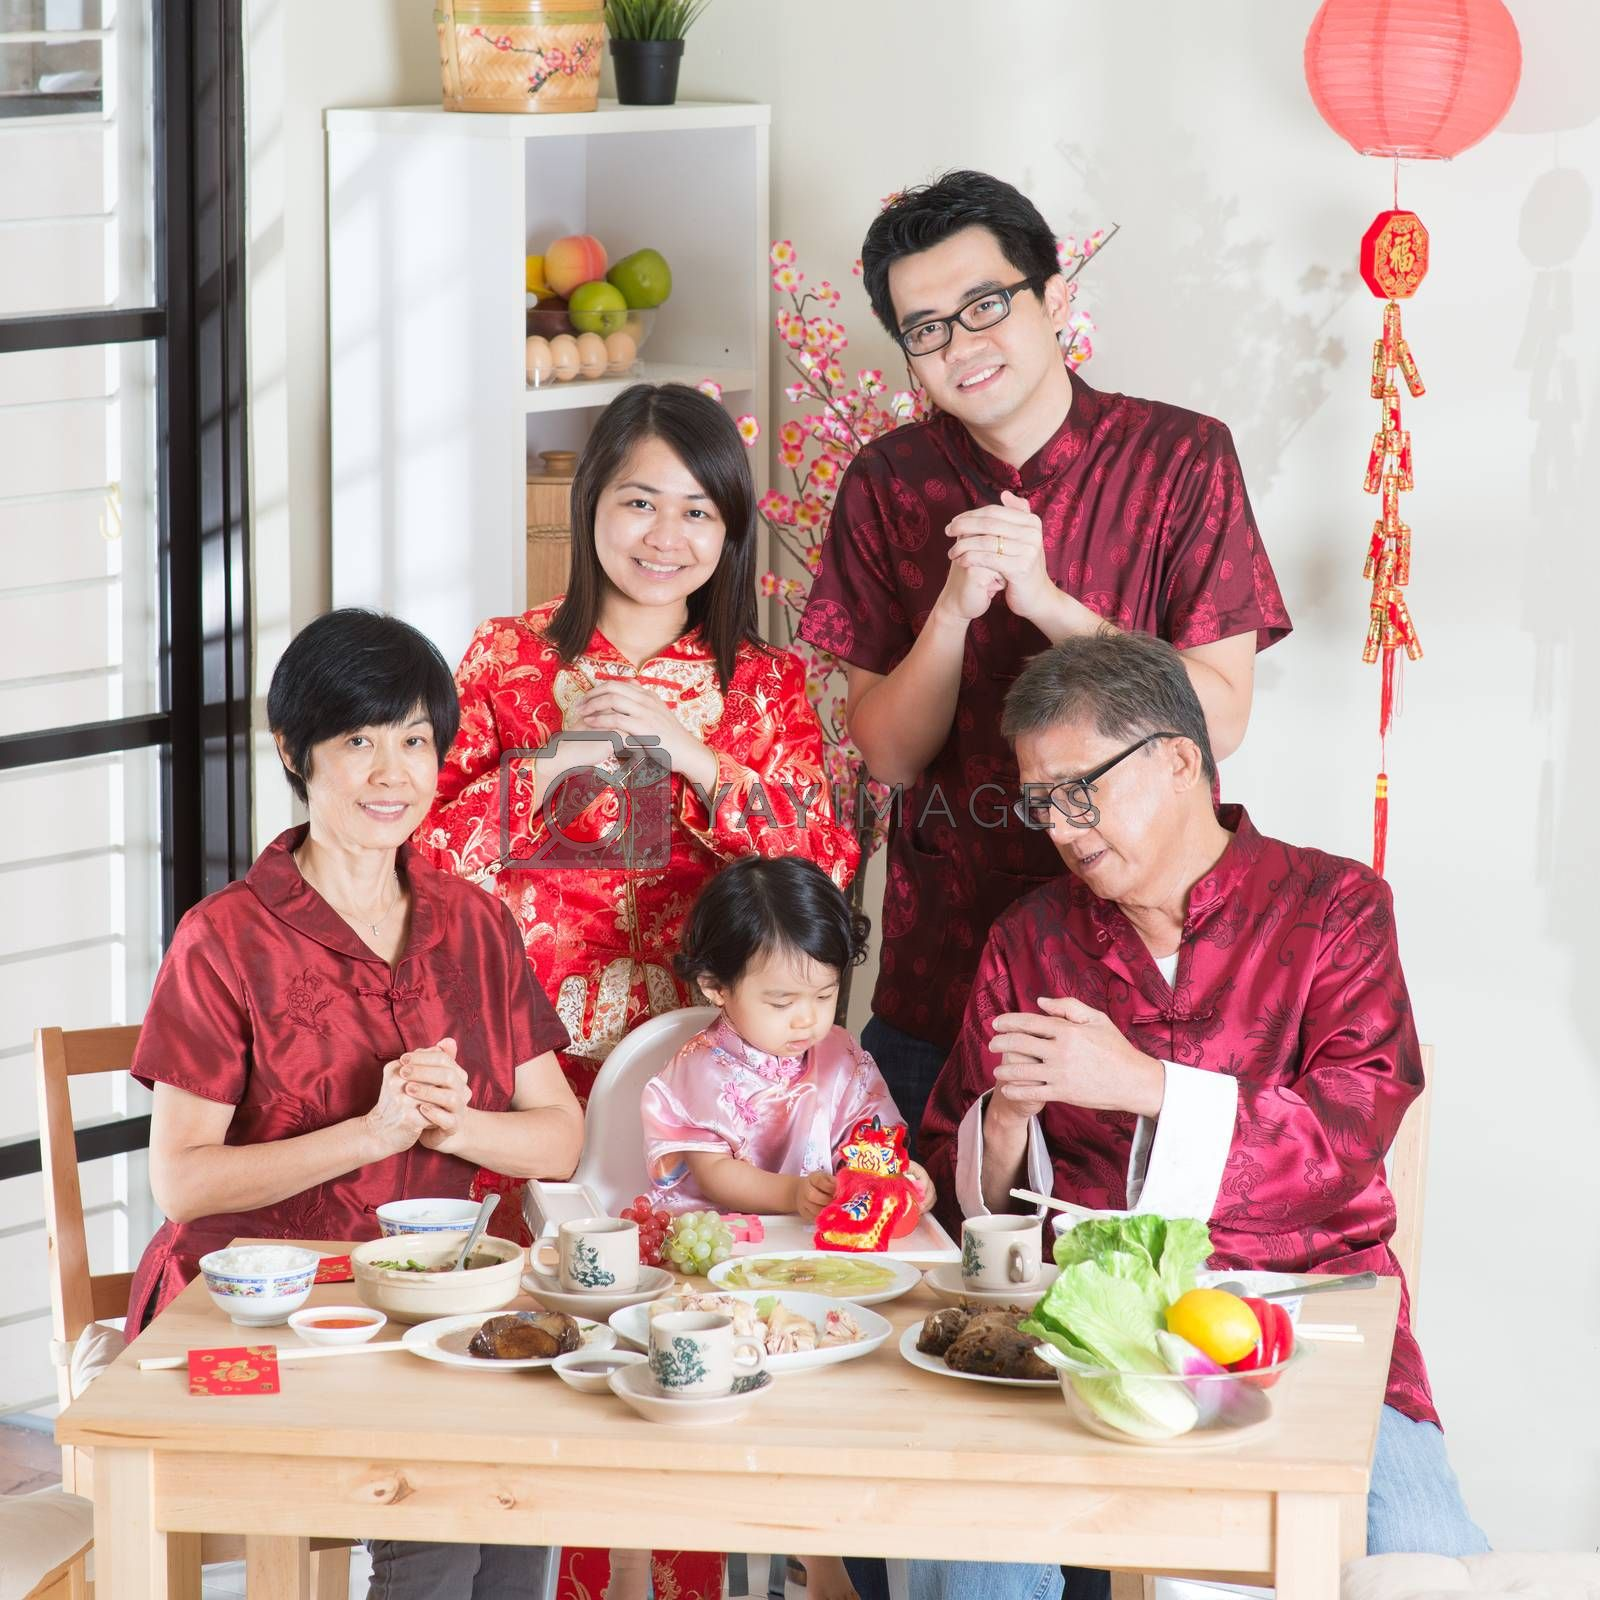 Spring seasons Chinese New Year, reunion dinner. Happy Asian Chinese multi generation family with red cheongsam greeting while dining at home.